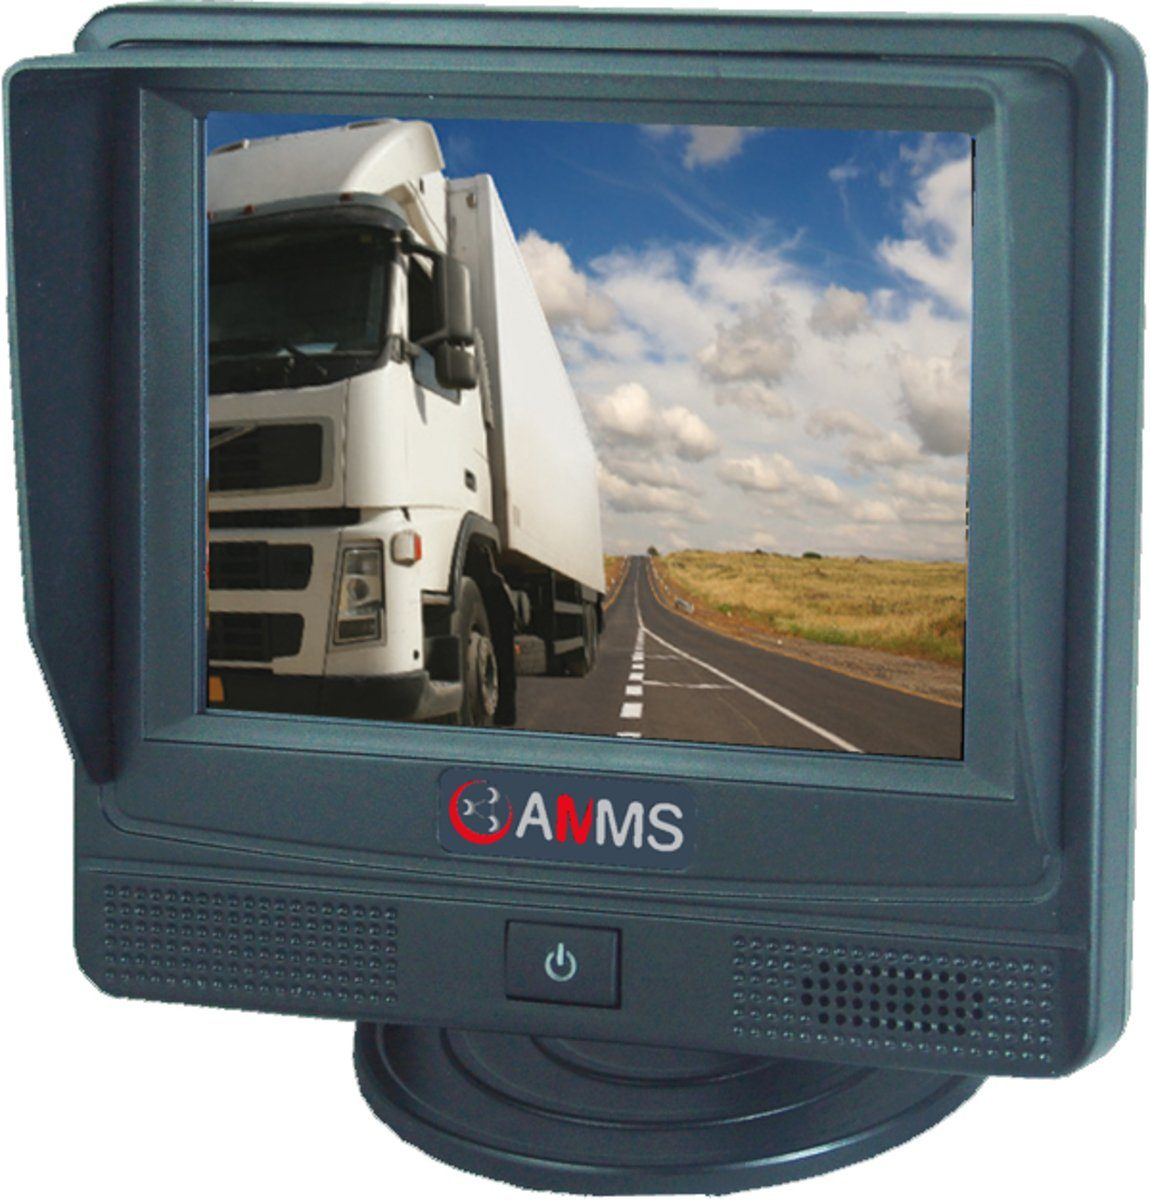 Axion Monitor »3,5 Zoll LCD-TFT Touchscreen Monitor (LCM 351 T)«